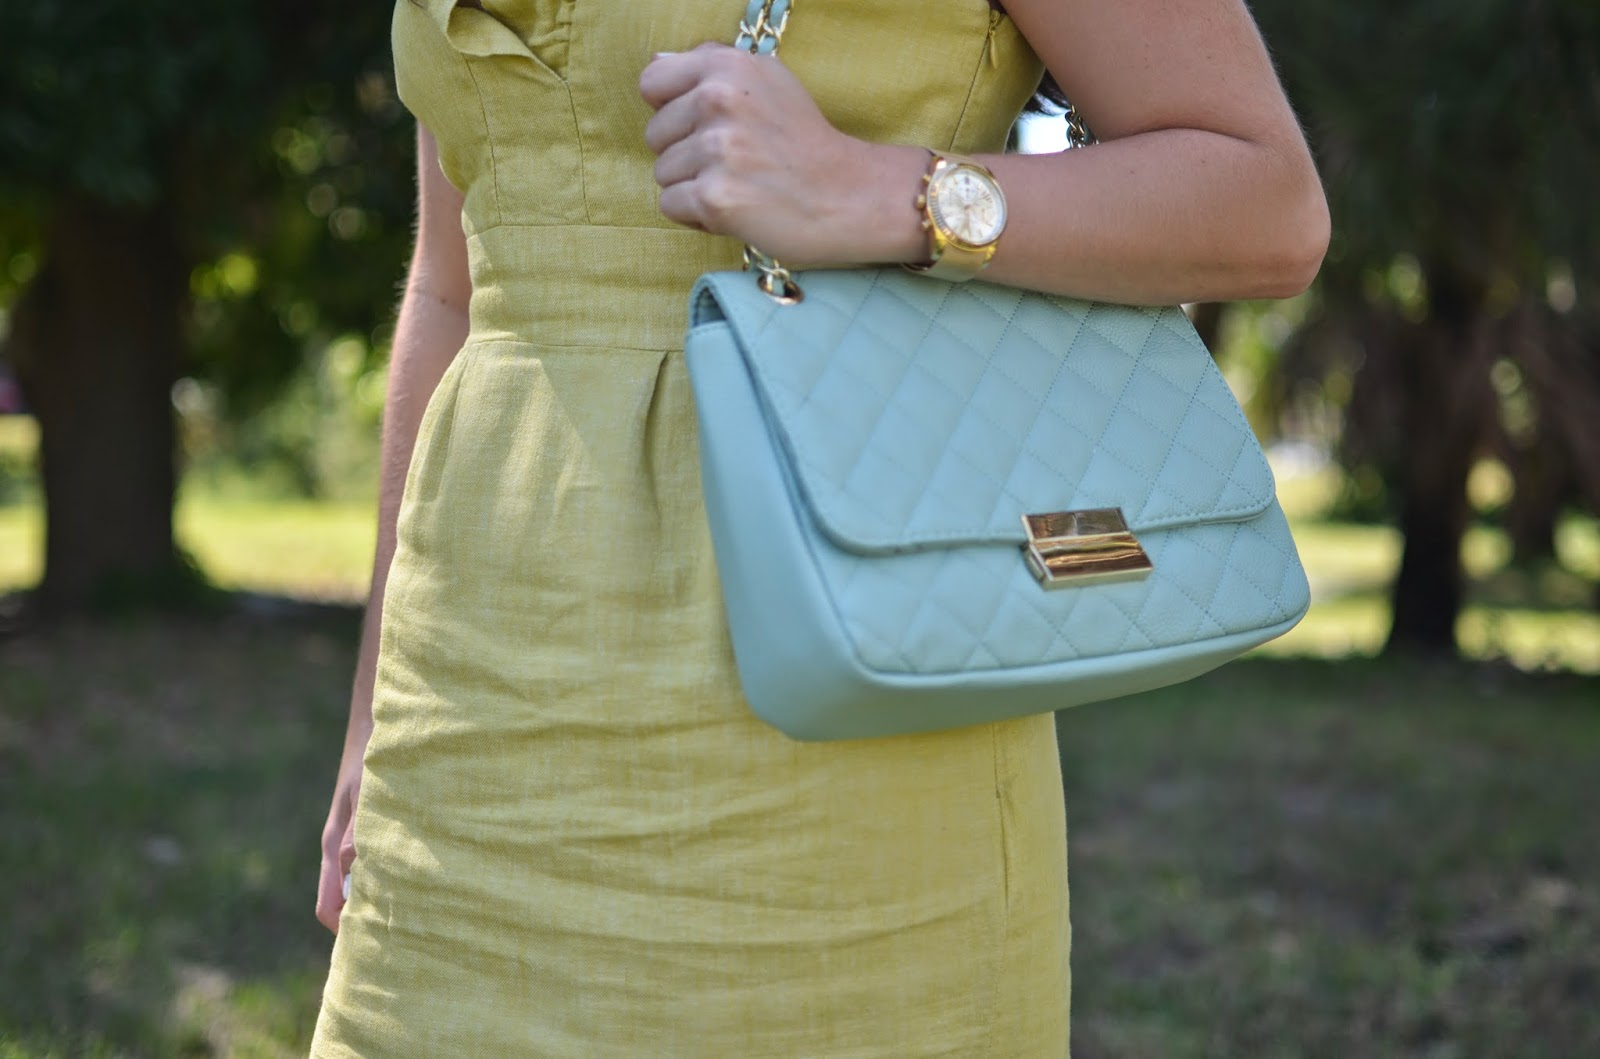 Ruffle dress - quilted bag - nude pumps